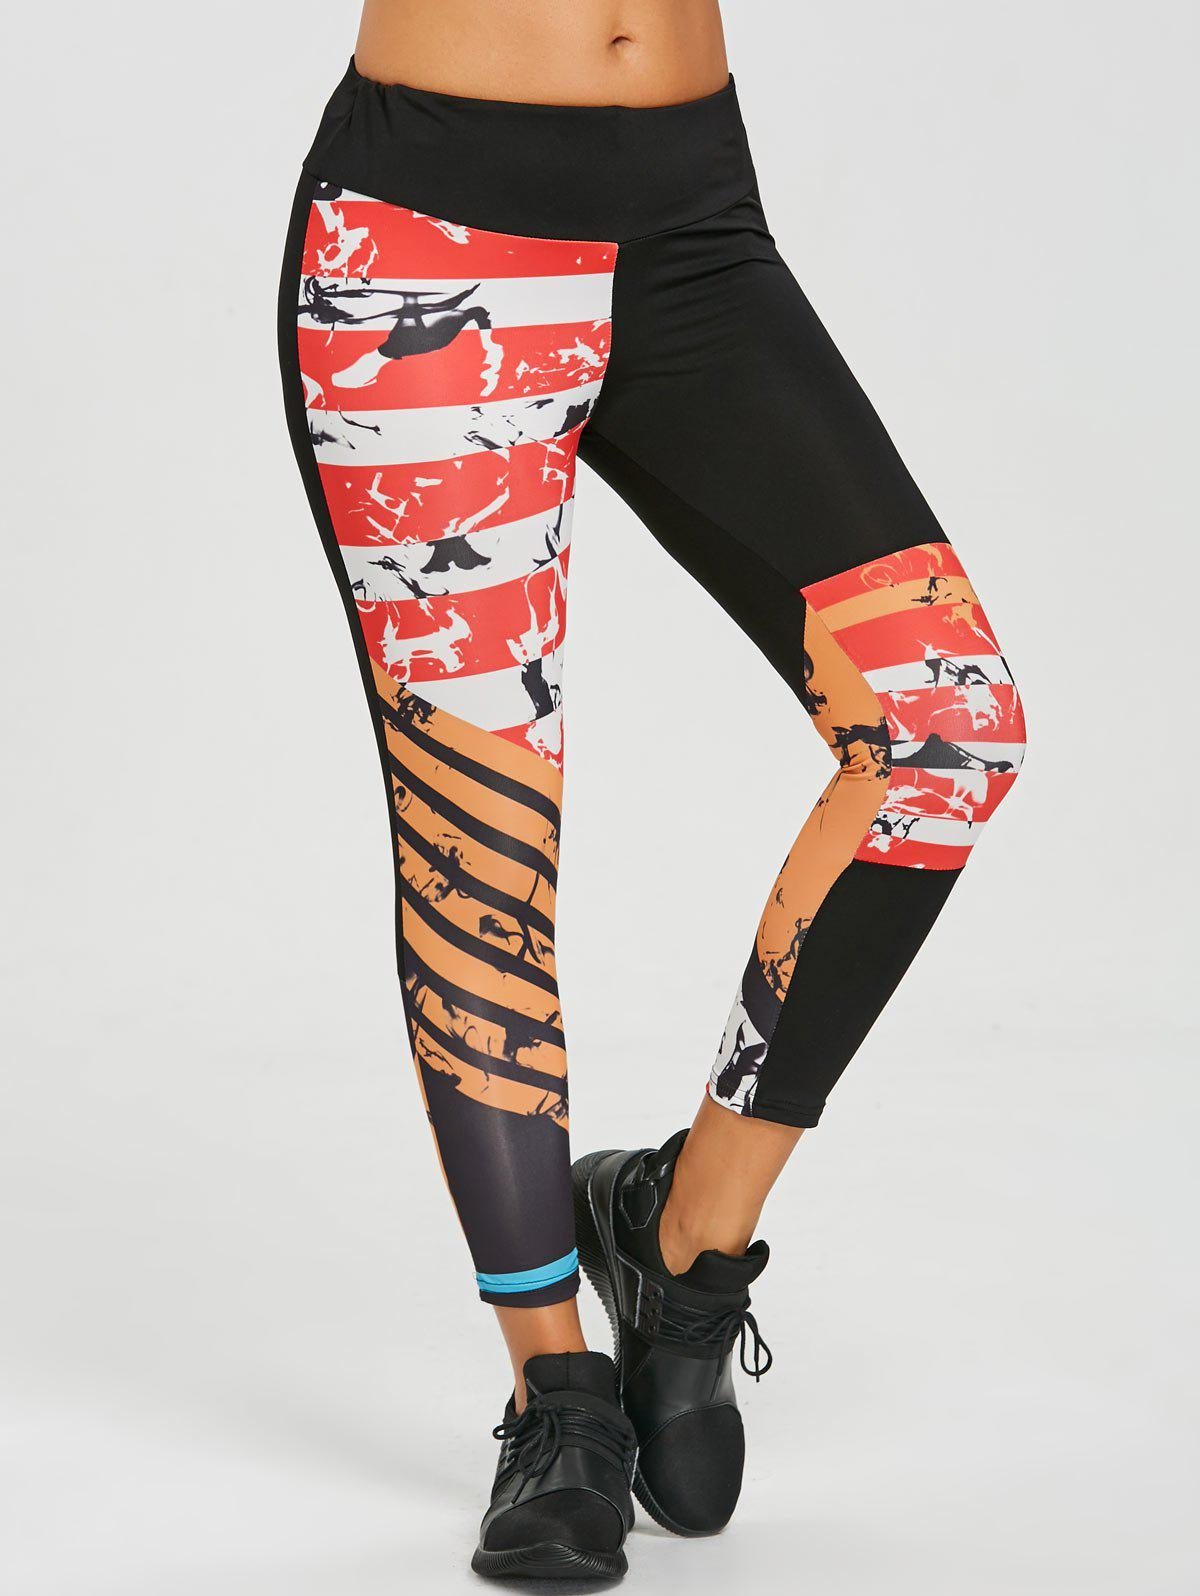 Fashion Scrawl Asymmetrical Workout Leggings